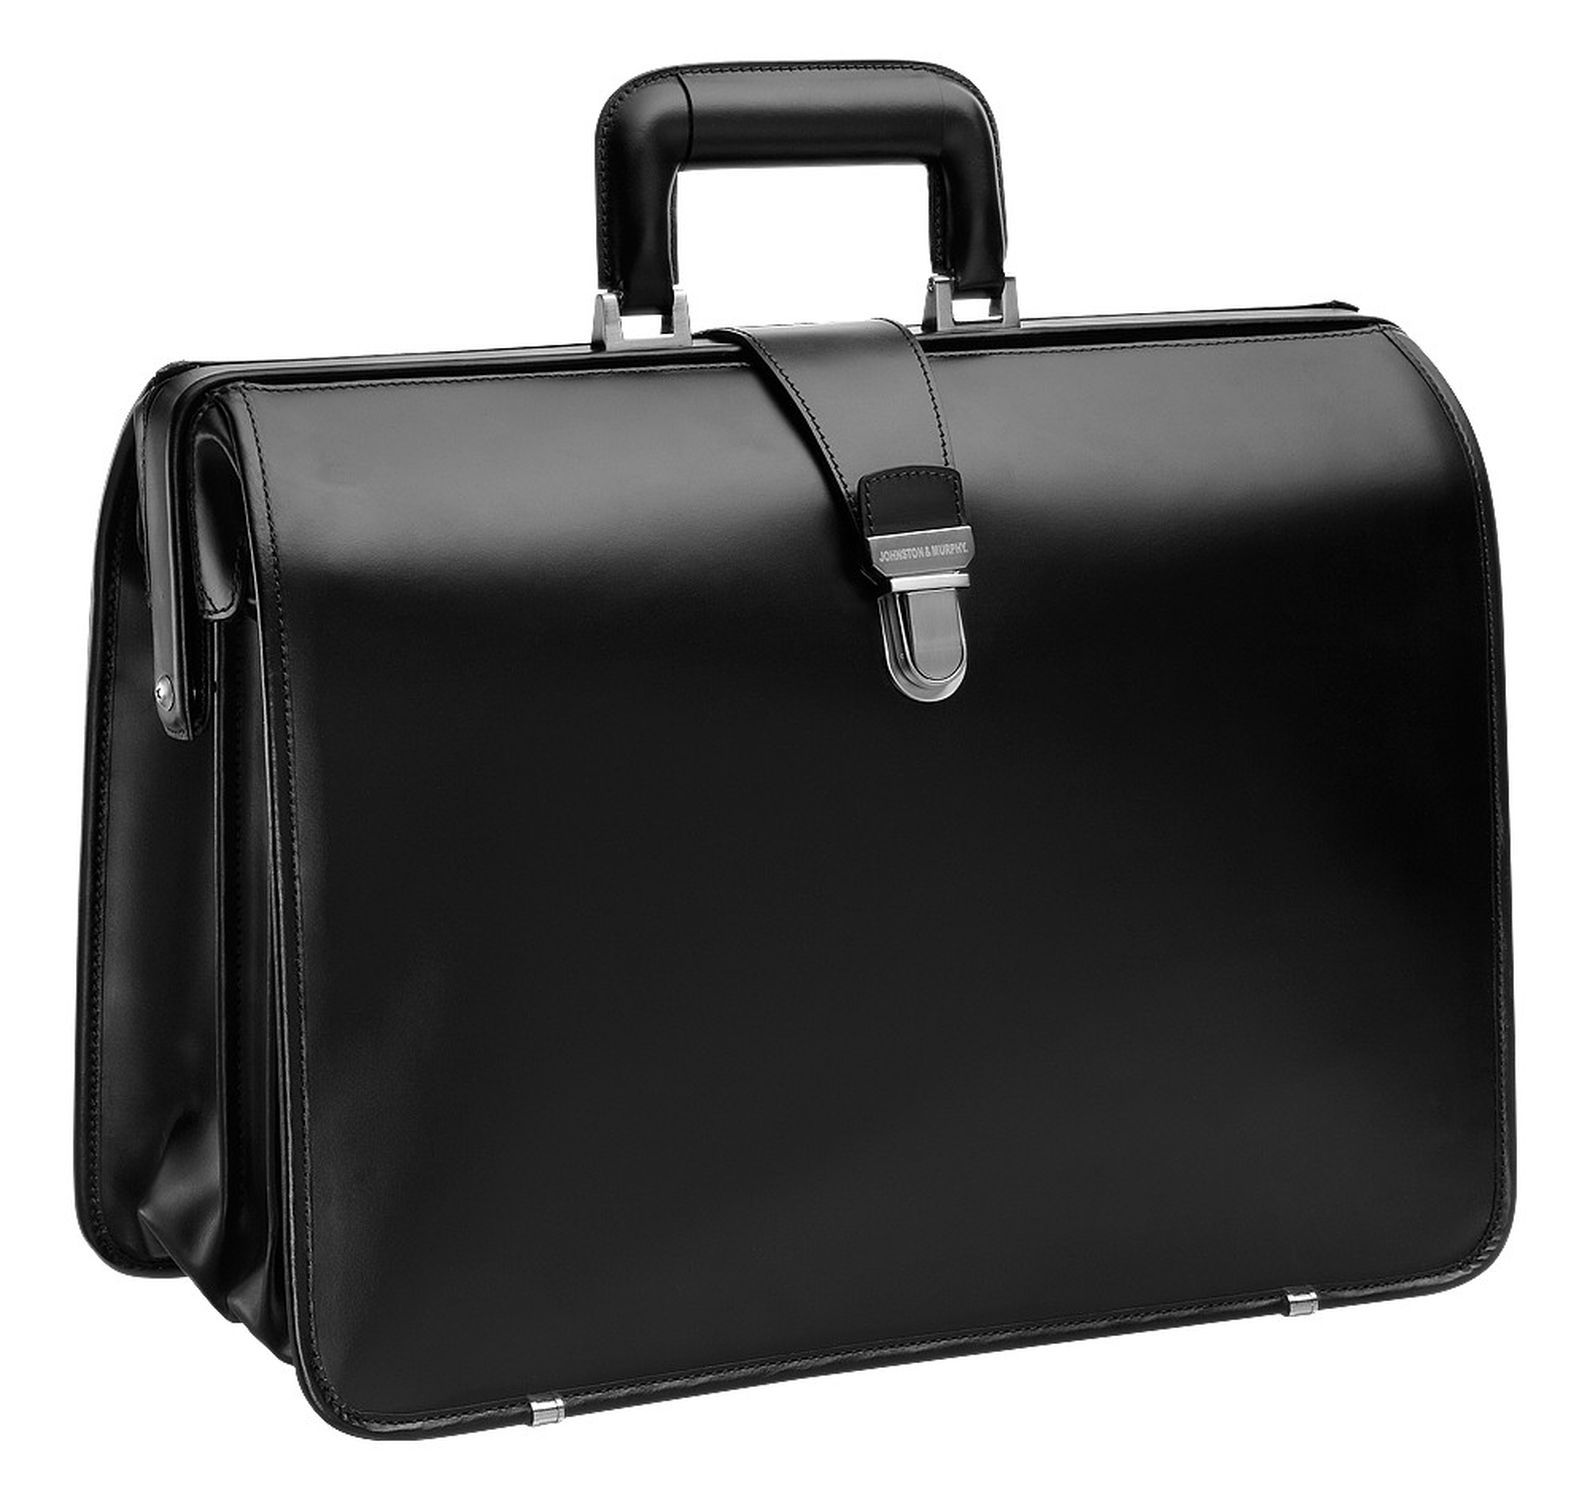 Lawyers briefcase johnston murphy luggage and breifcases lawyers briefcase johnston murphy magicingreecefo Image collections